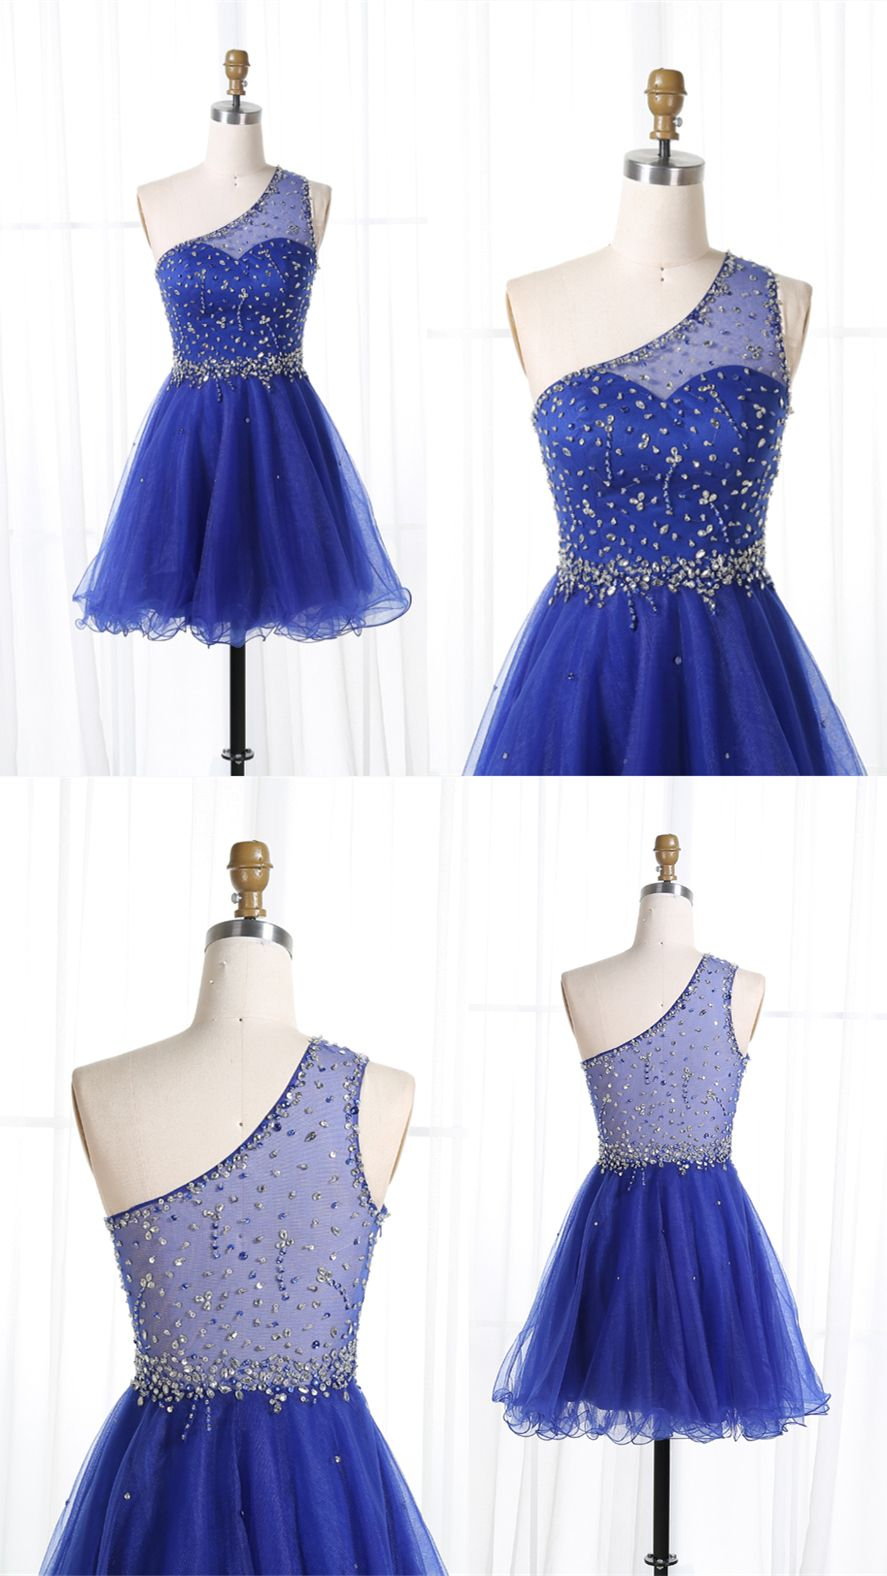 Aline one shoulder royal blue tulle short homecoming dress with